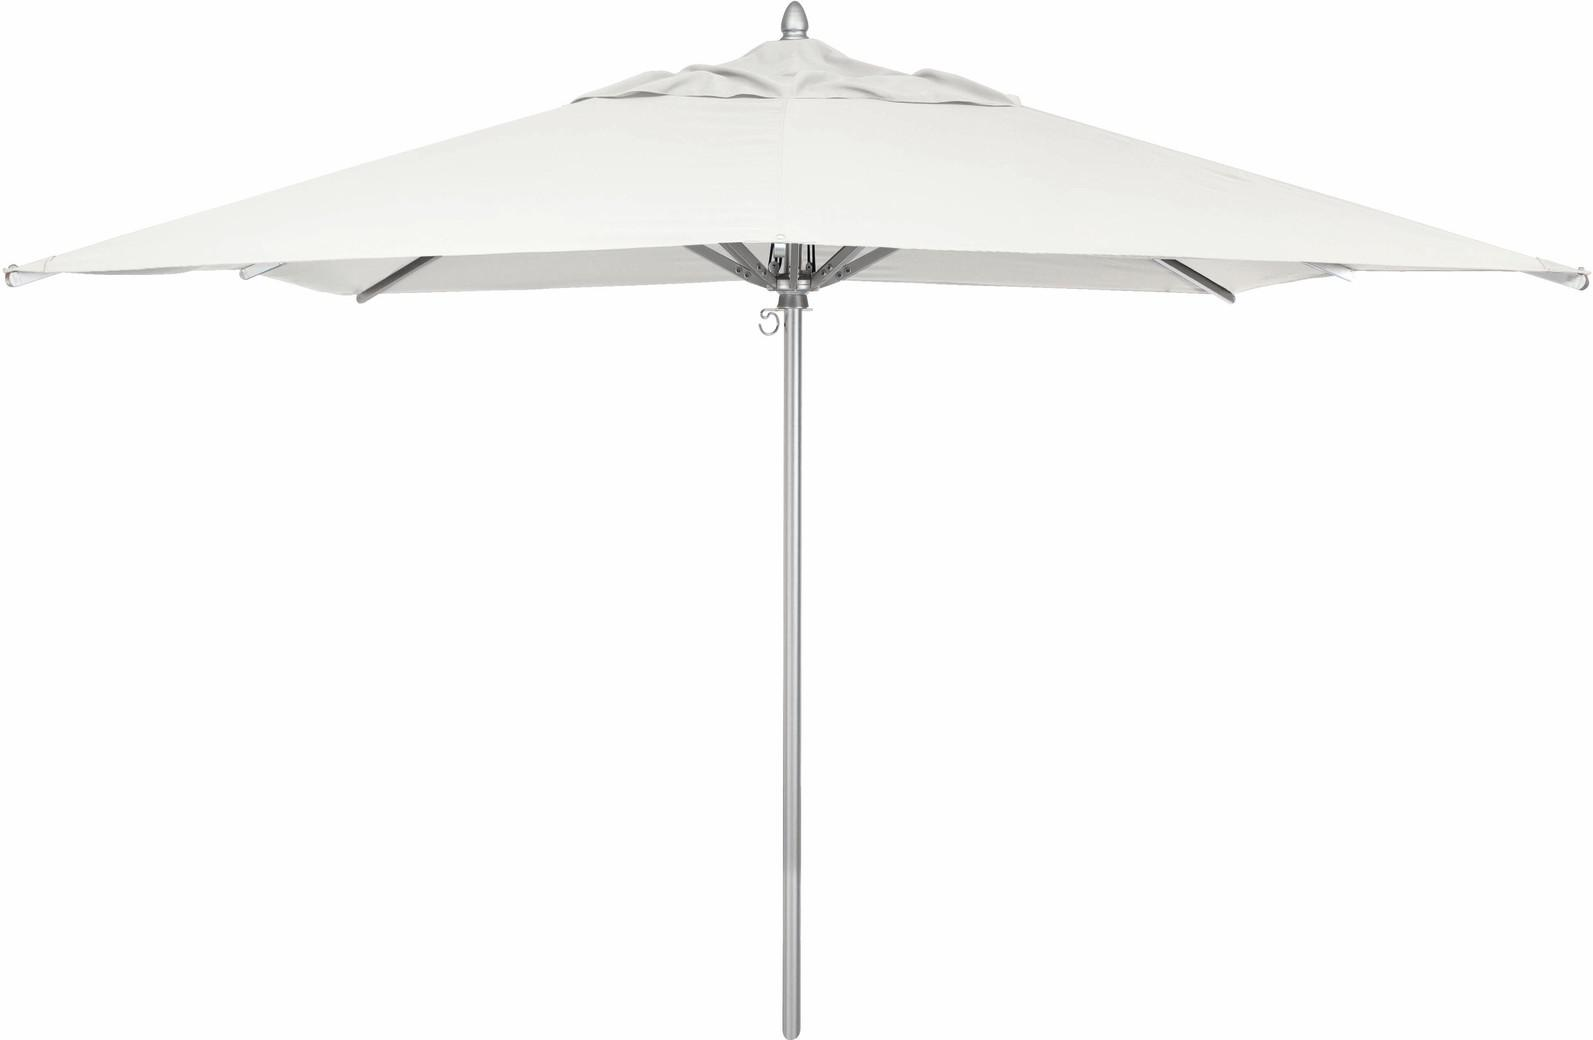 Umbrella - aluminium - 300*300 - canvas